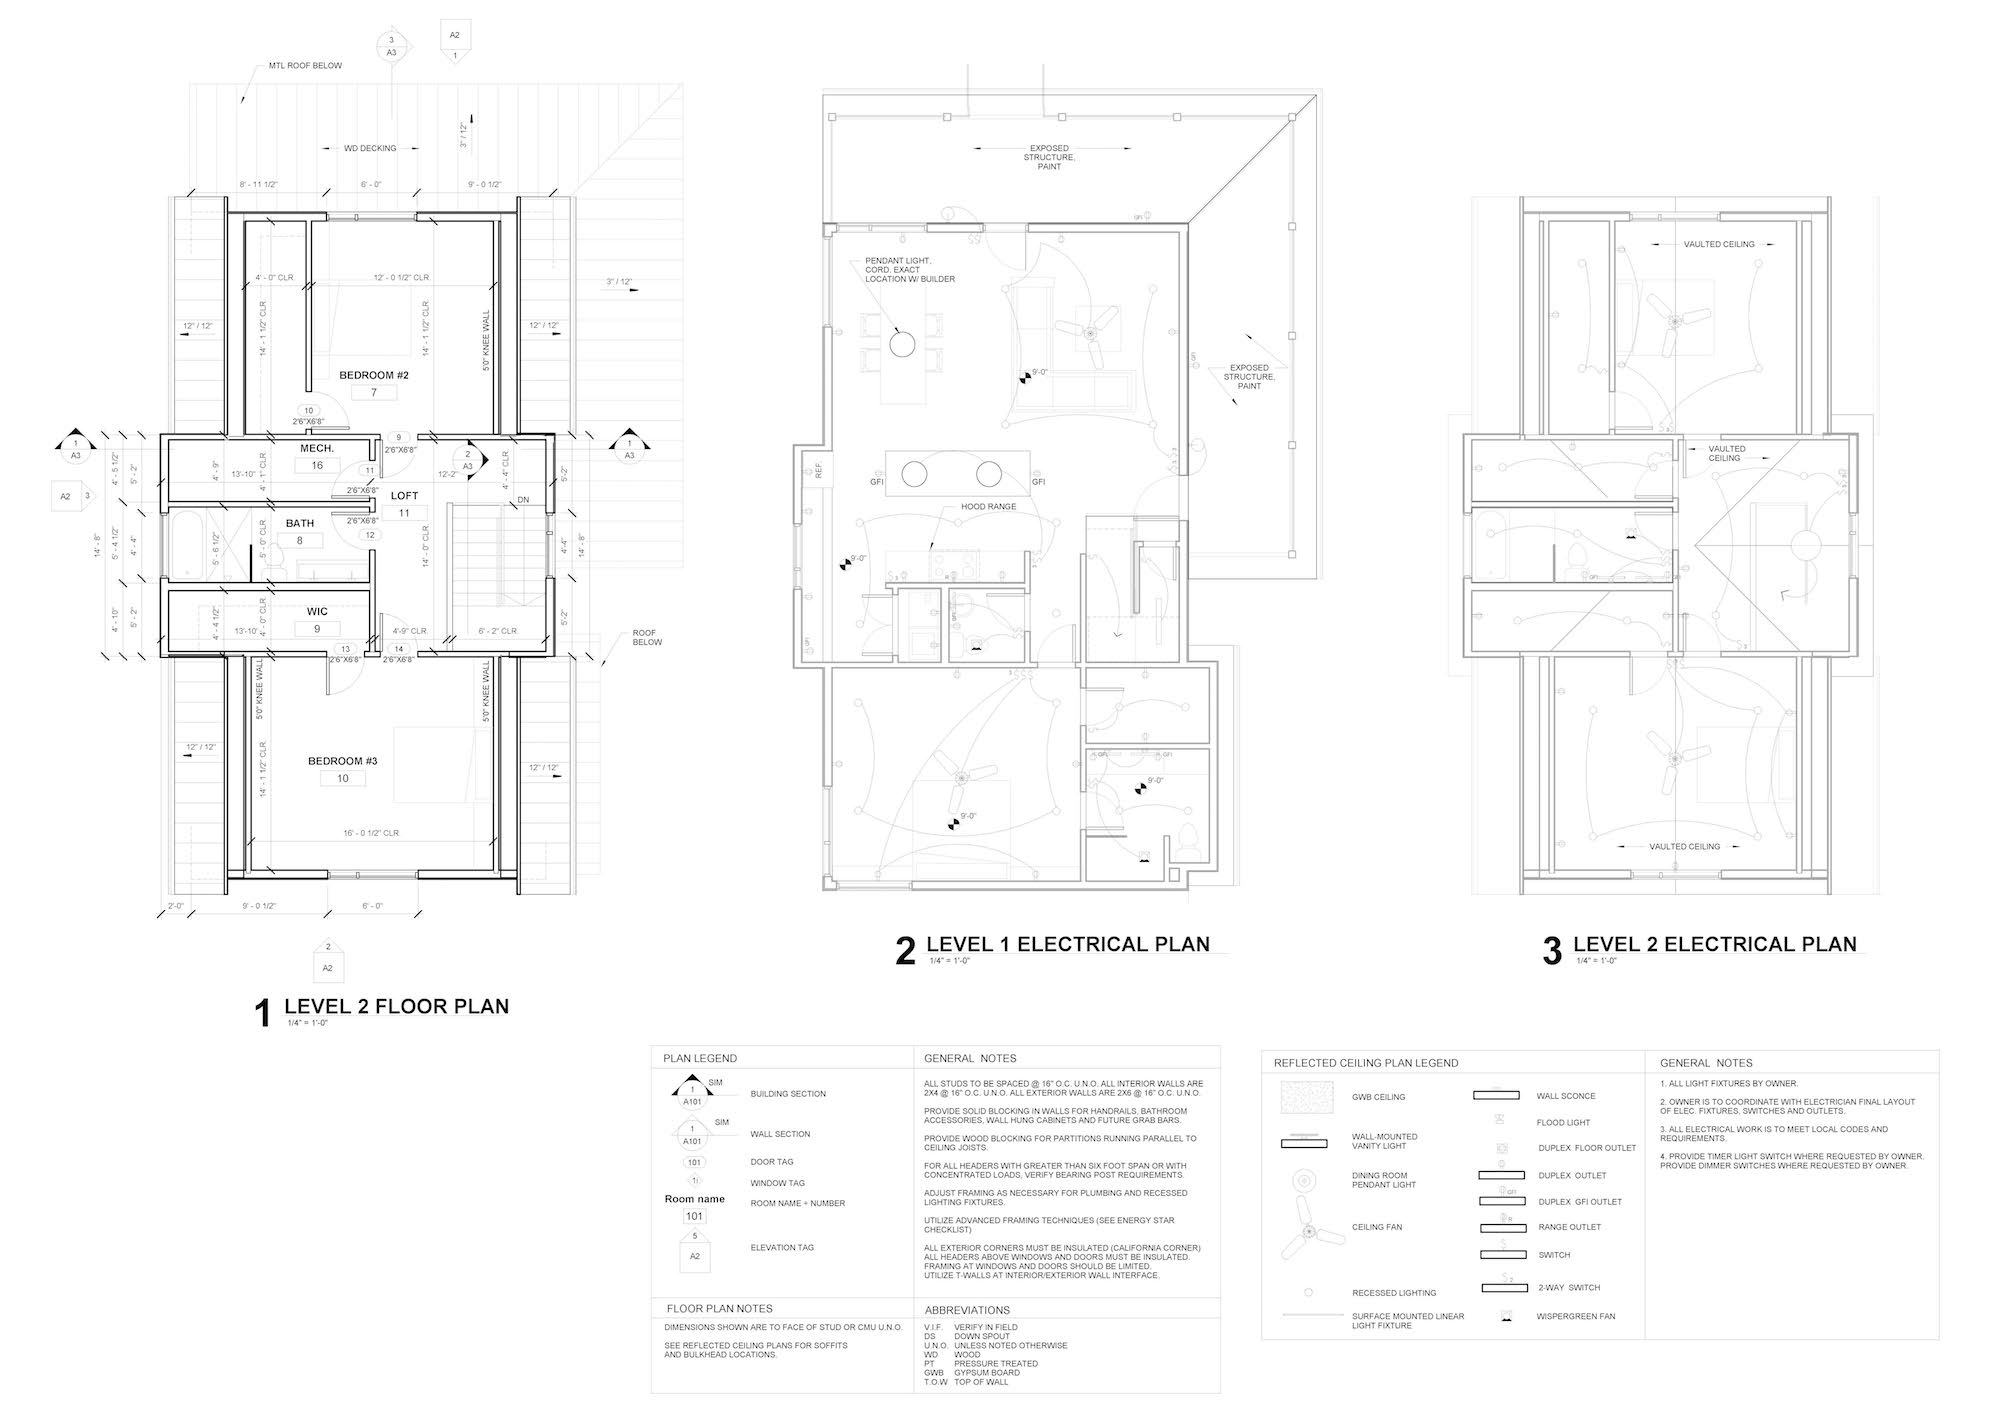 P12 11 West Haven_Plan_2018.02.20 (1)_Page_2.jpg